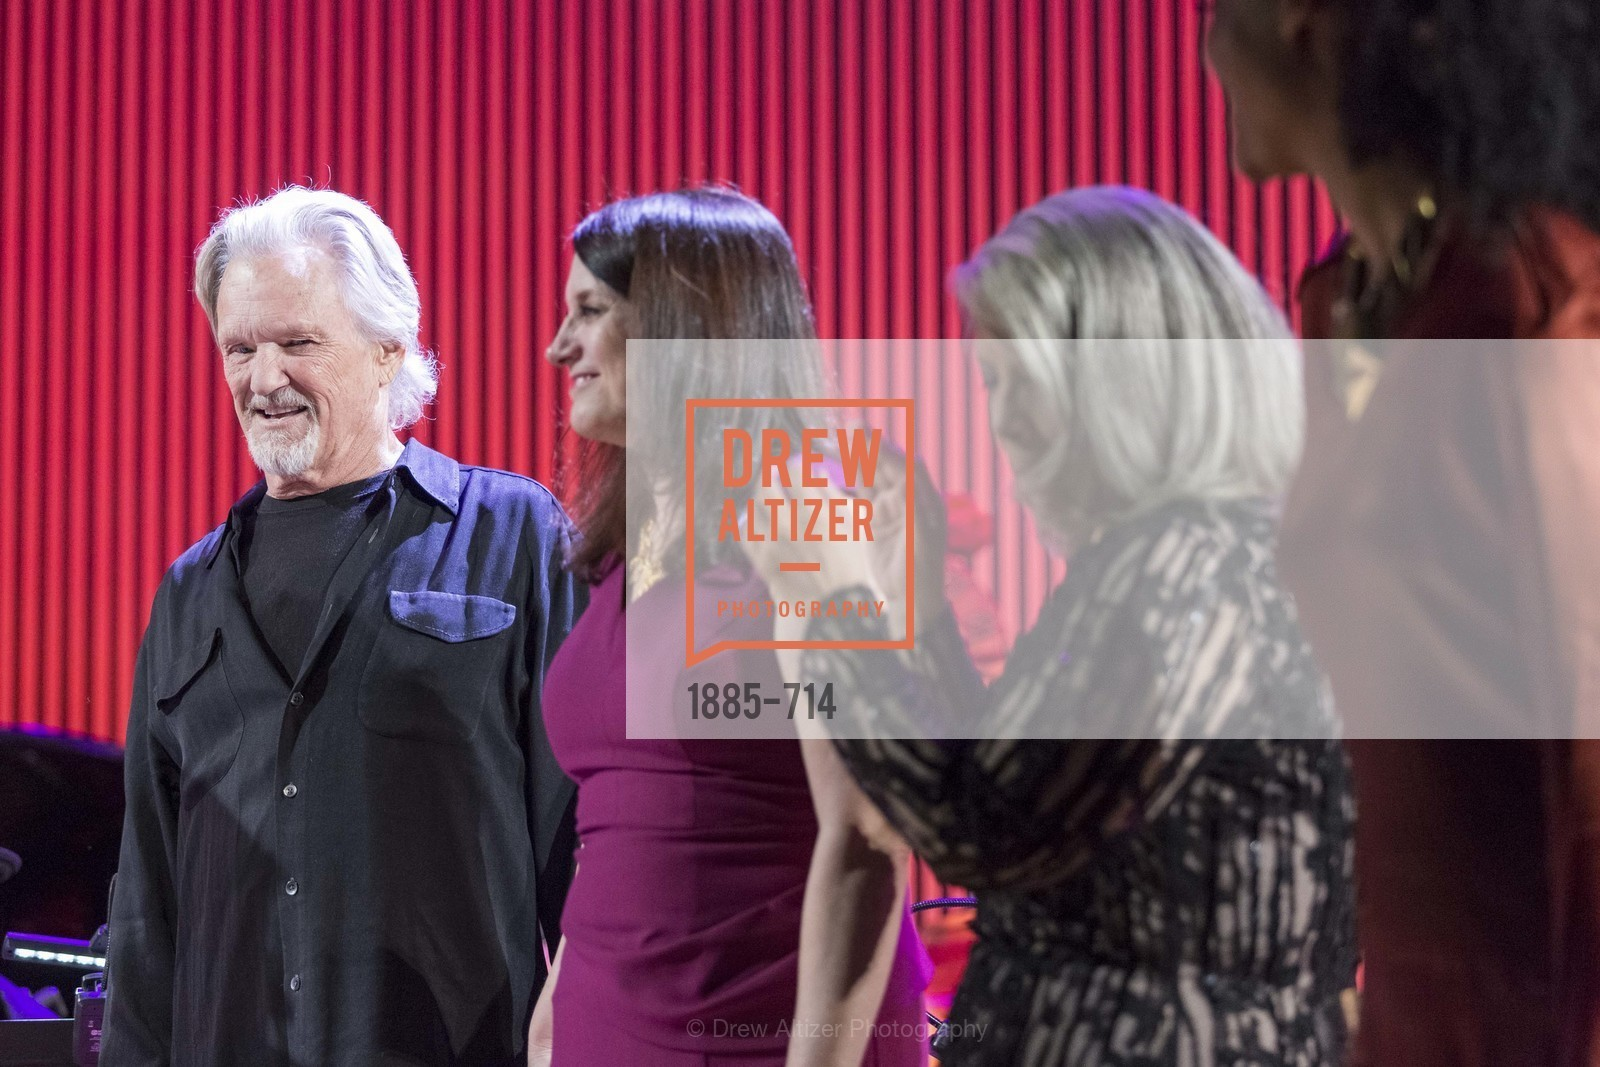 Kris Kristofferson, SFJAZZ Gala 2015 Honors Joni Mitchell with Lifetime Achievement Award, US, May 8th, 2015,Drew Altizer, Drew Altizer Photography, full-service agency, private events, San Francisco photographer, photographer california